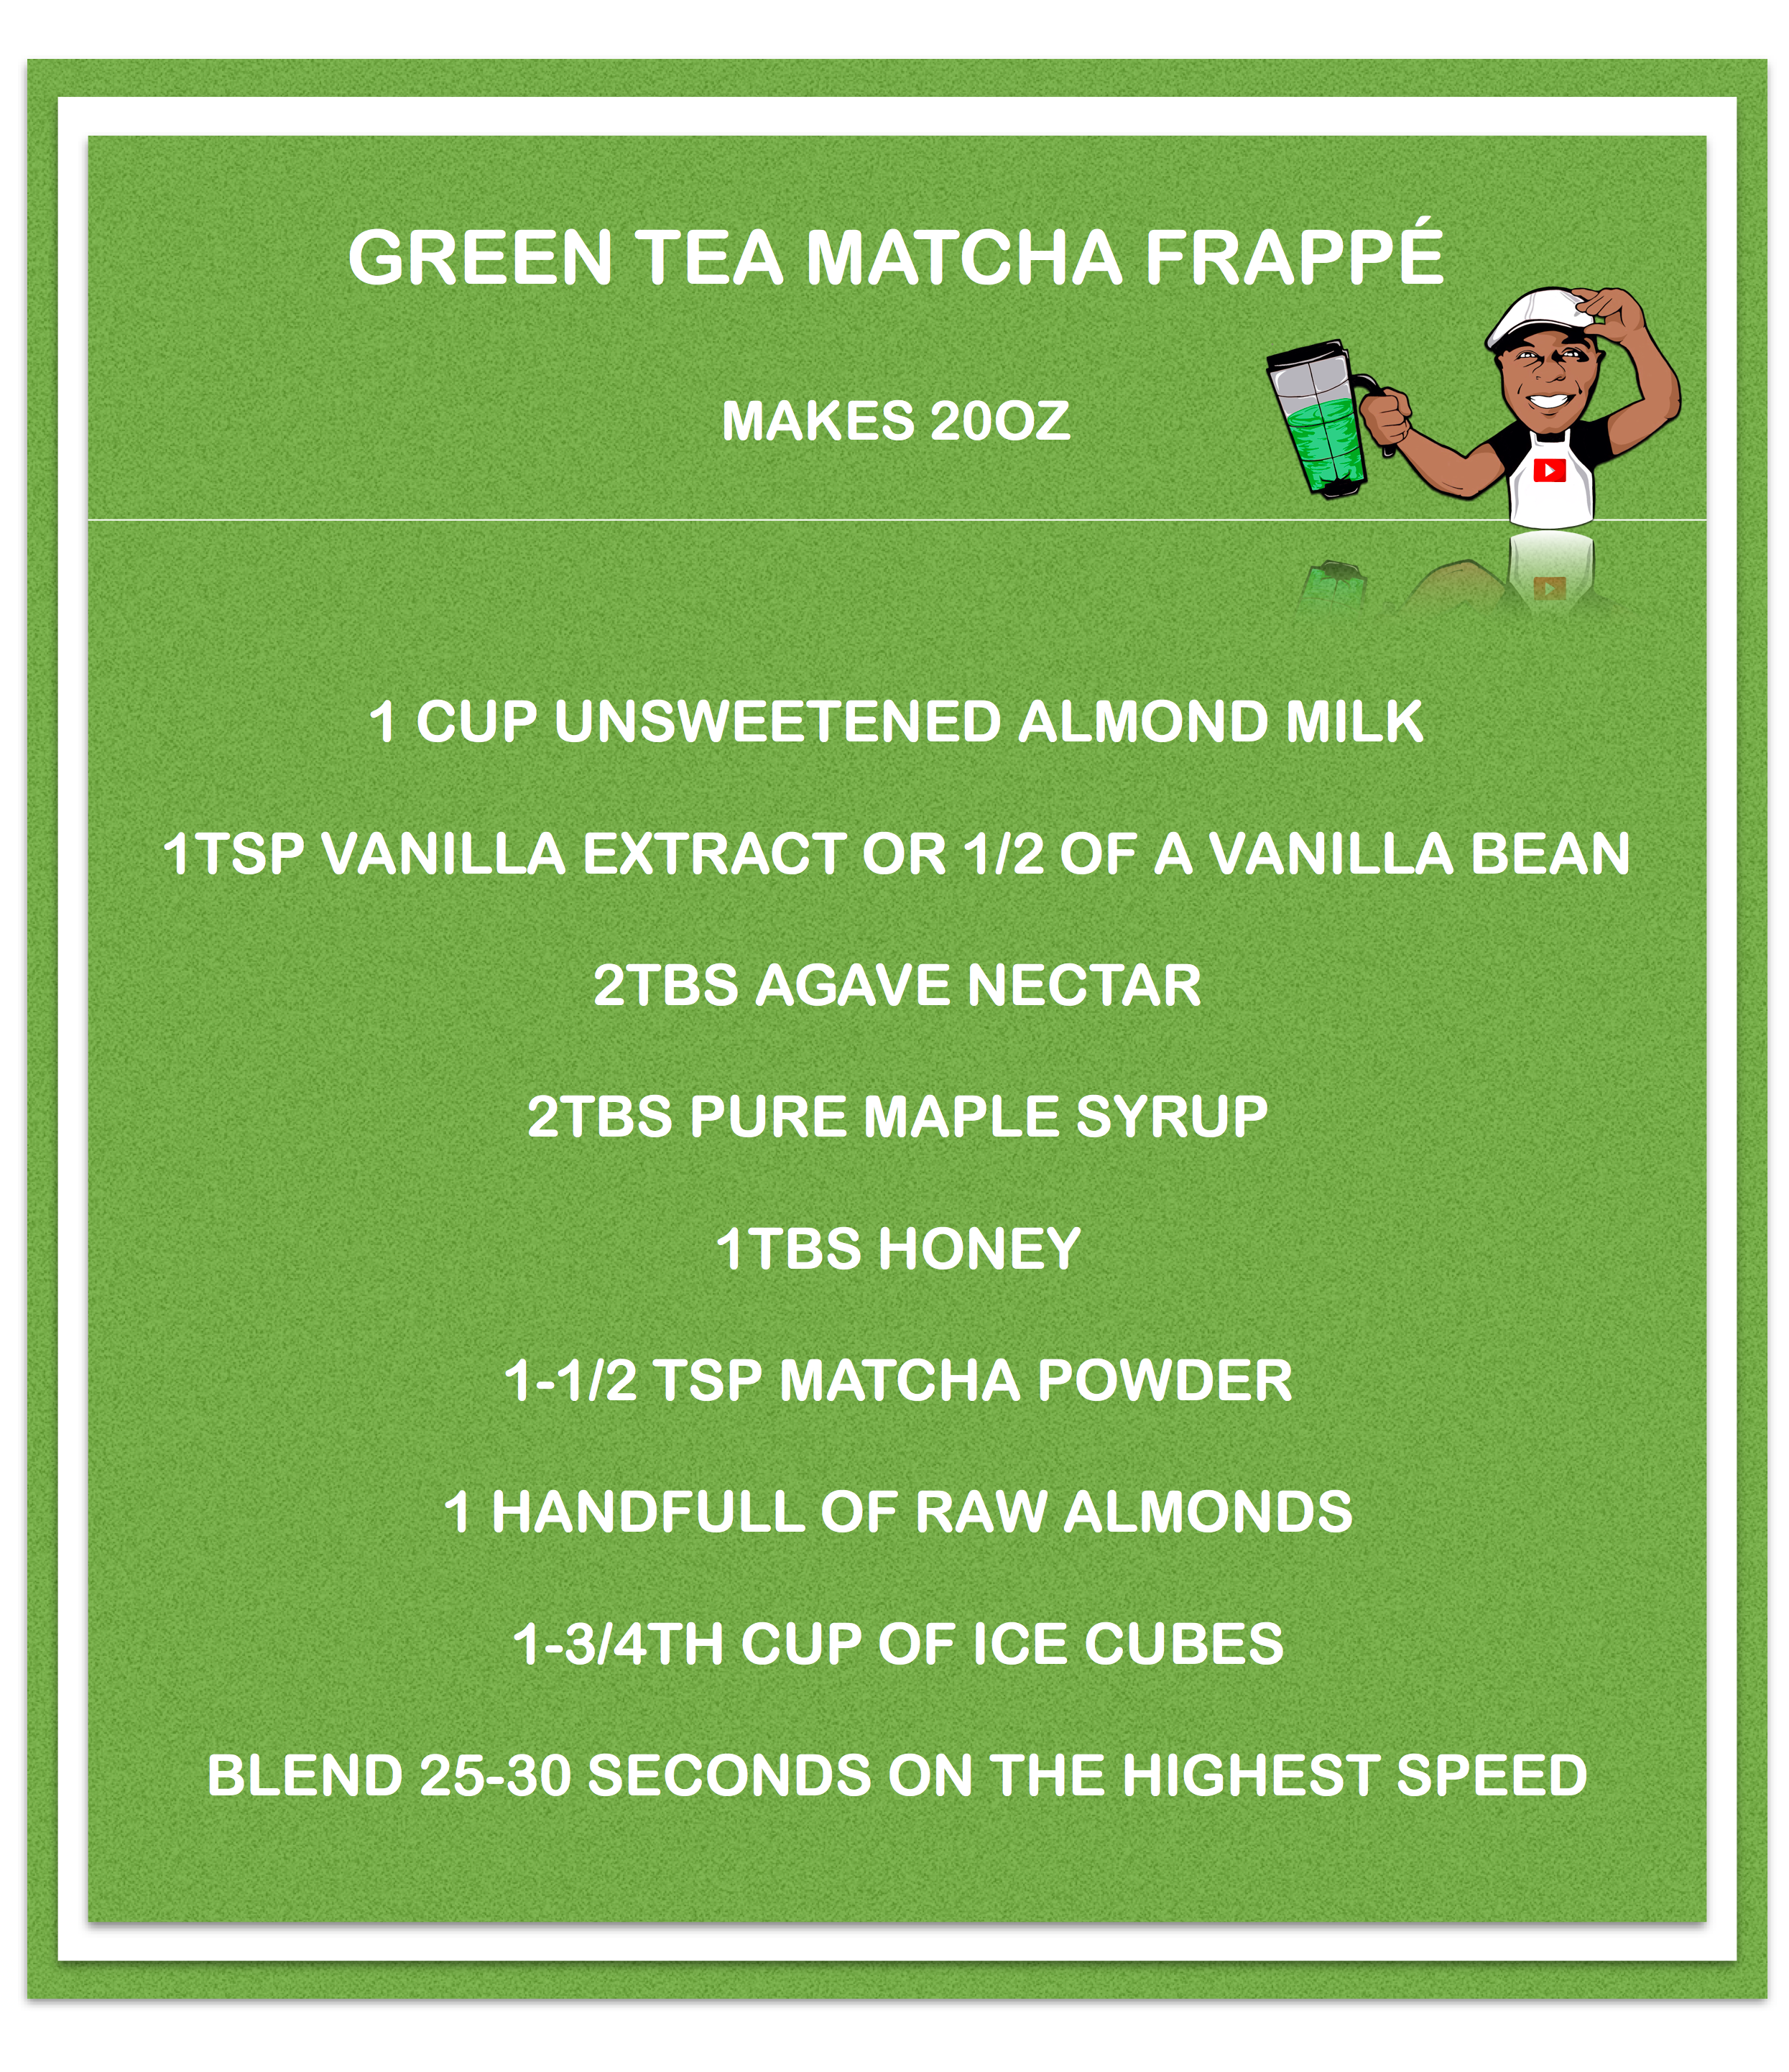 Green Tea Matcha Frappe Recipe.png